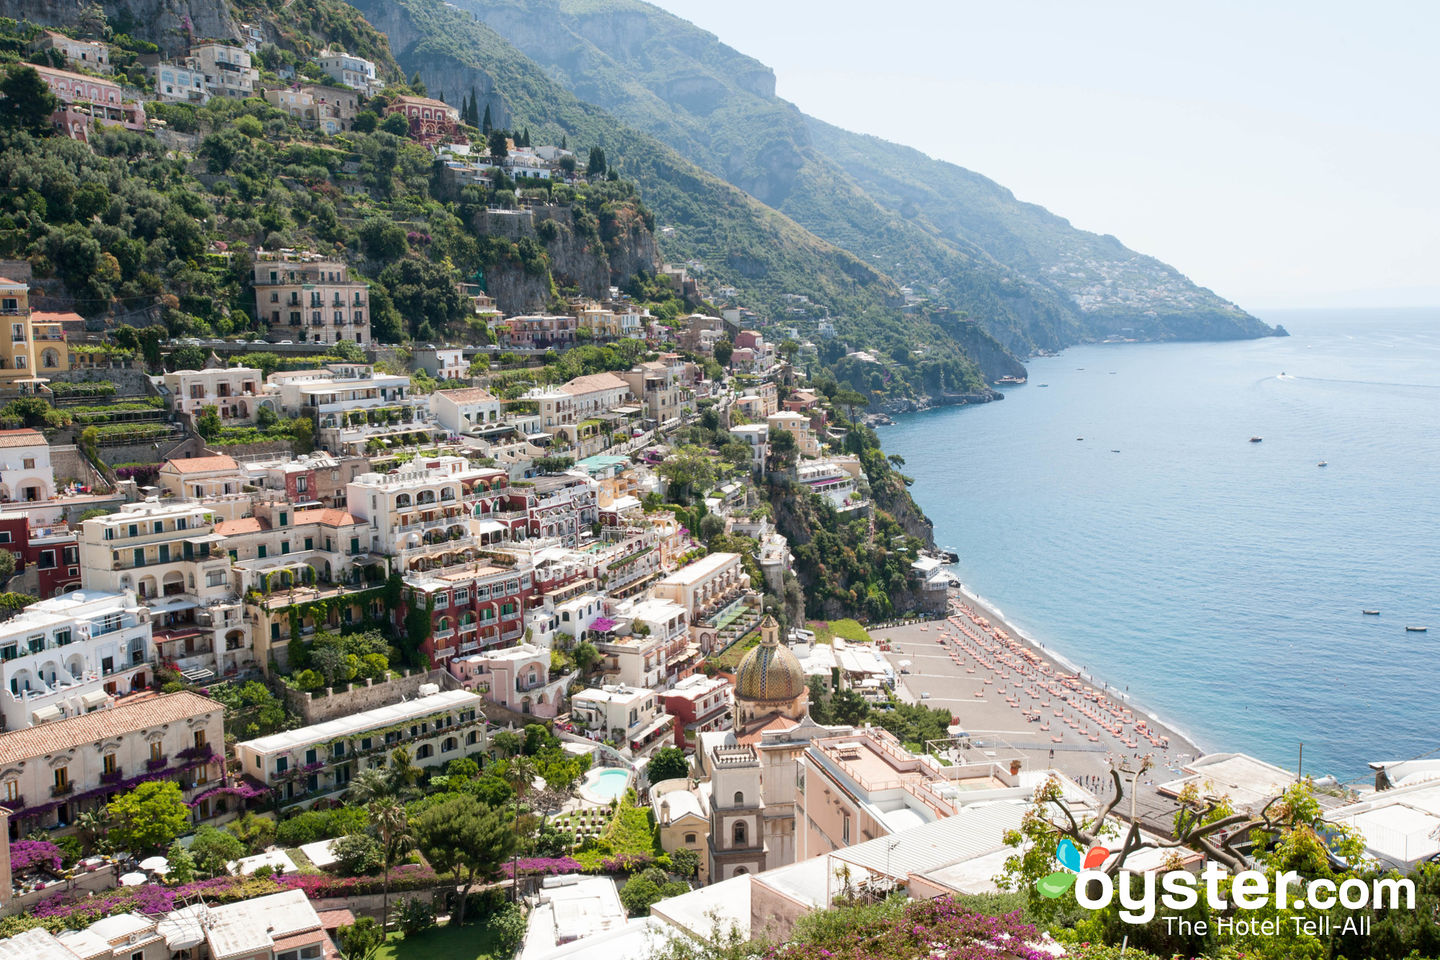 8 Rookie Mistakes to Avoid in the Amalfi Coast